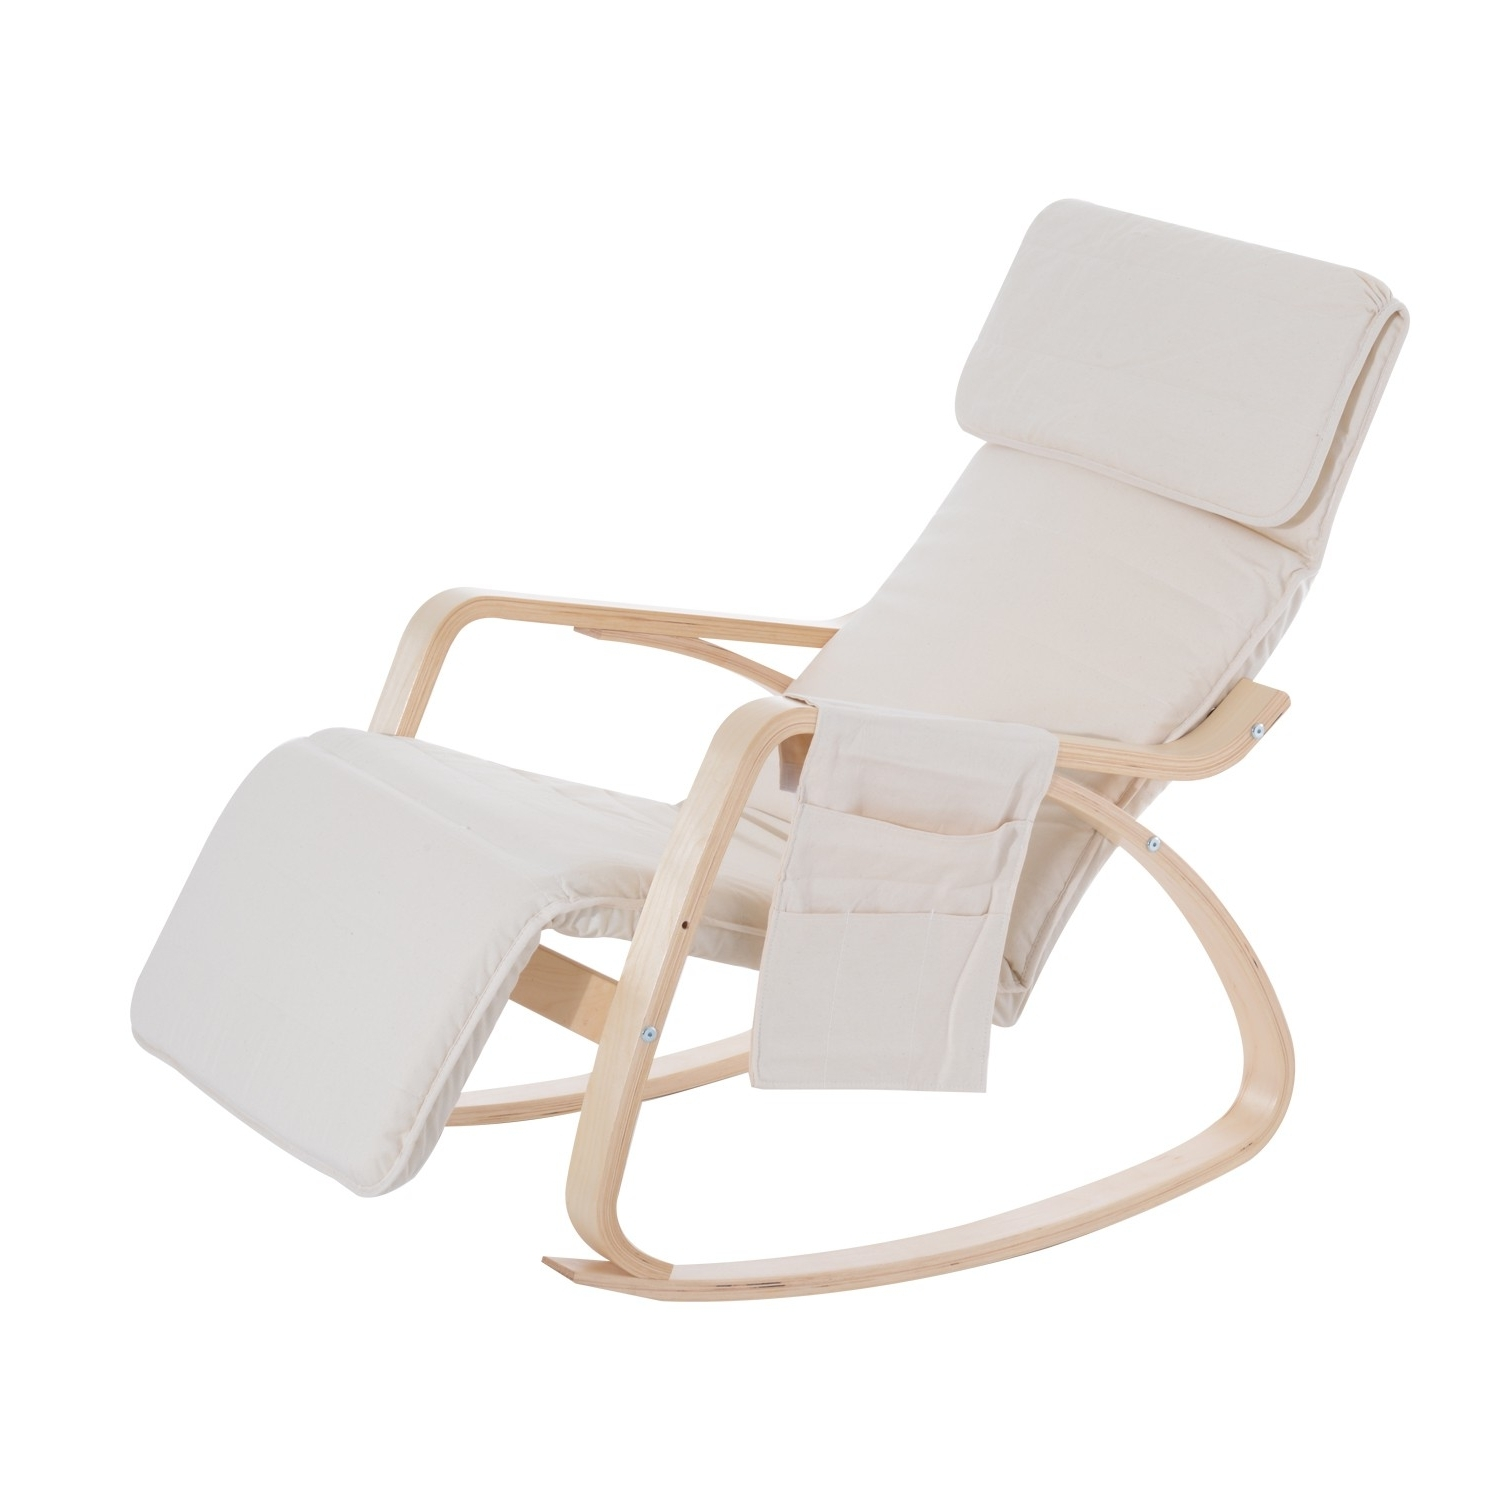 Most Popular Rocking Chairs With Footrest Inside Homcom Rocking Chair W/adjustable Footrest & Side Pocket Beige (View 6 of 15)